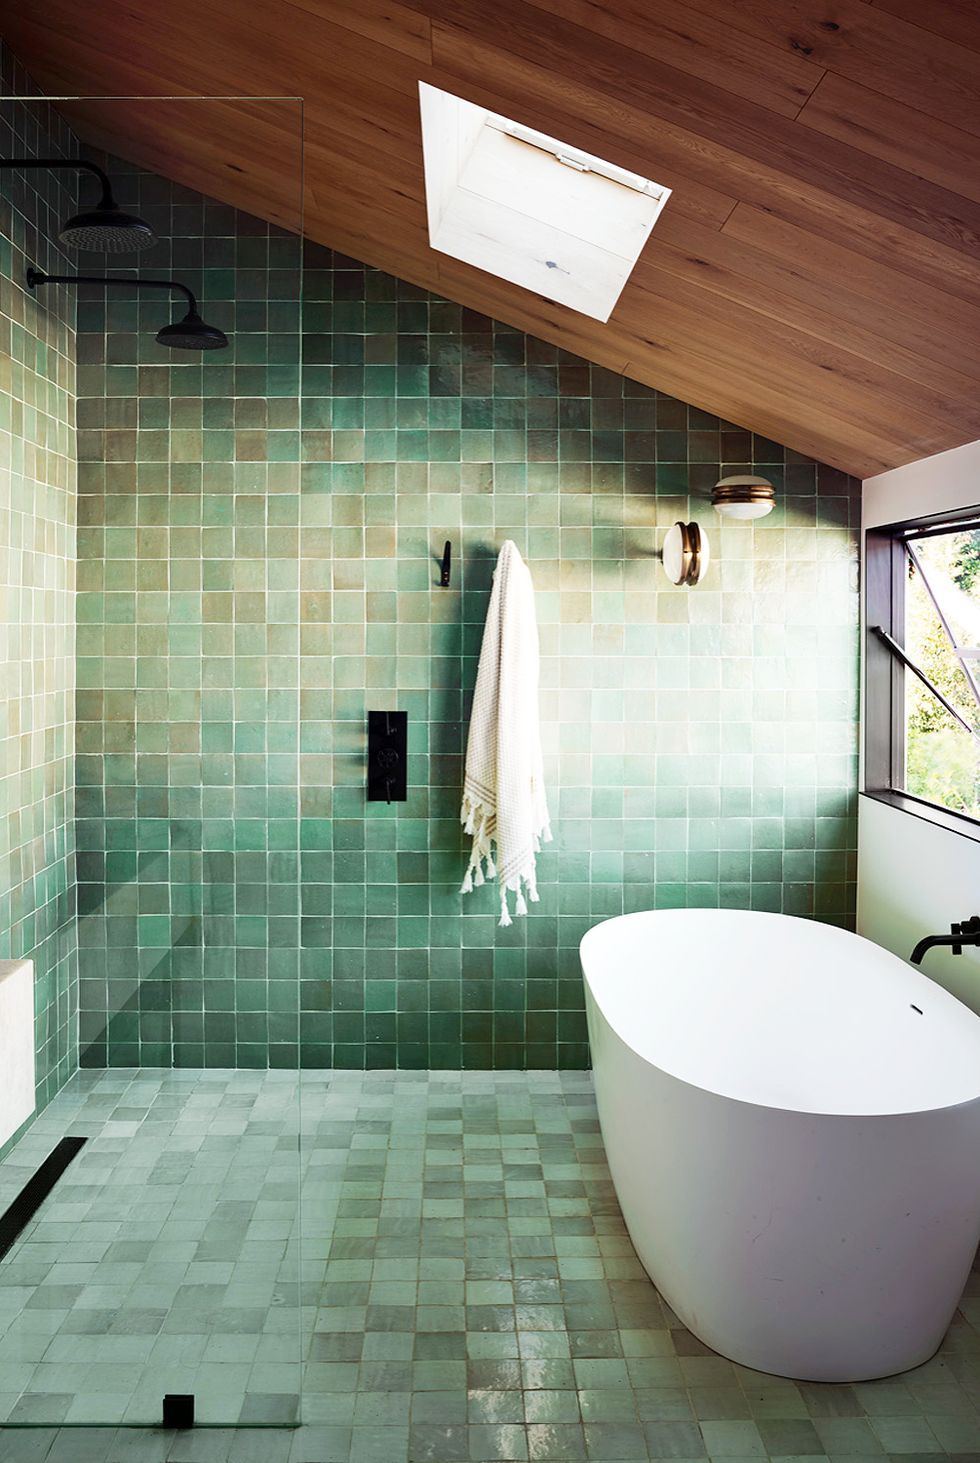 9 Best Bathroom Designs - Photos of Beautiful Bathroom Ideas to Try